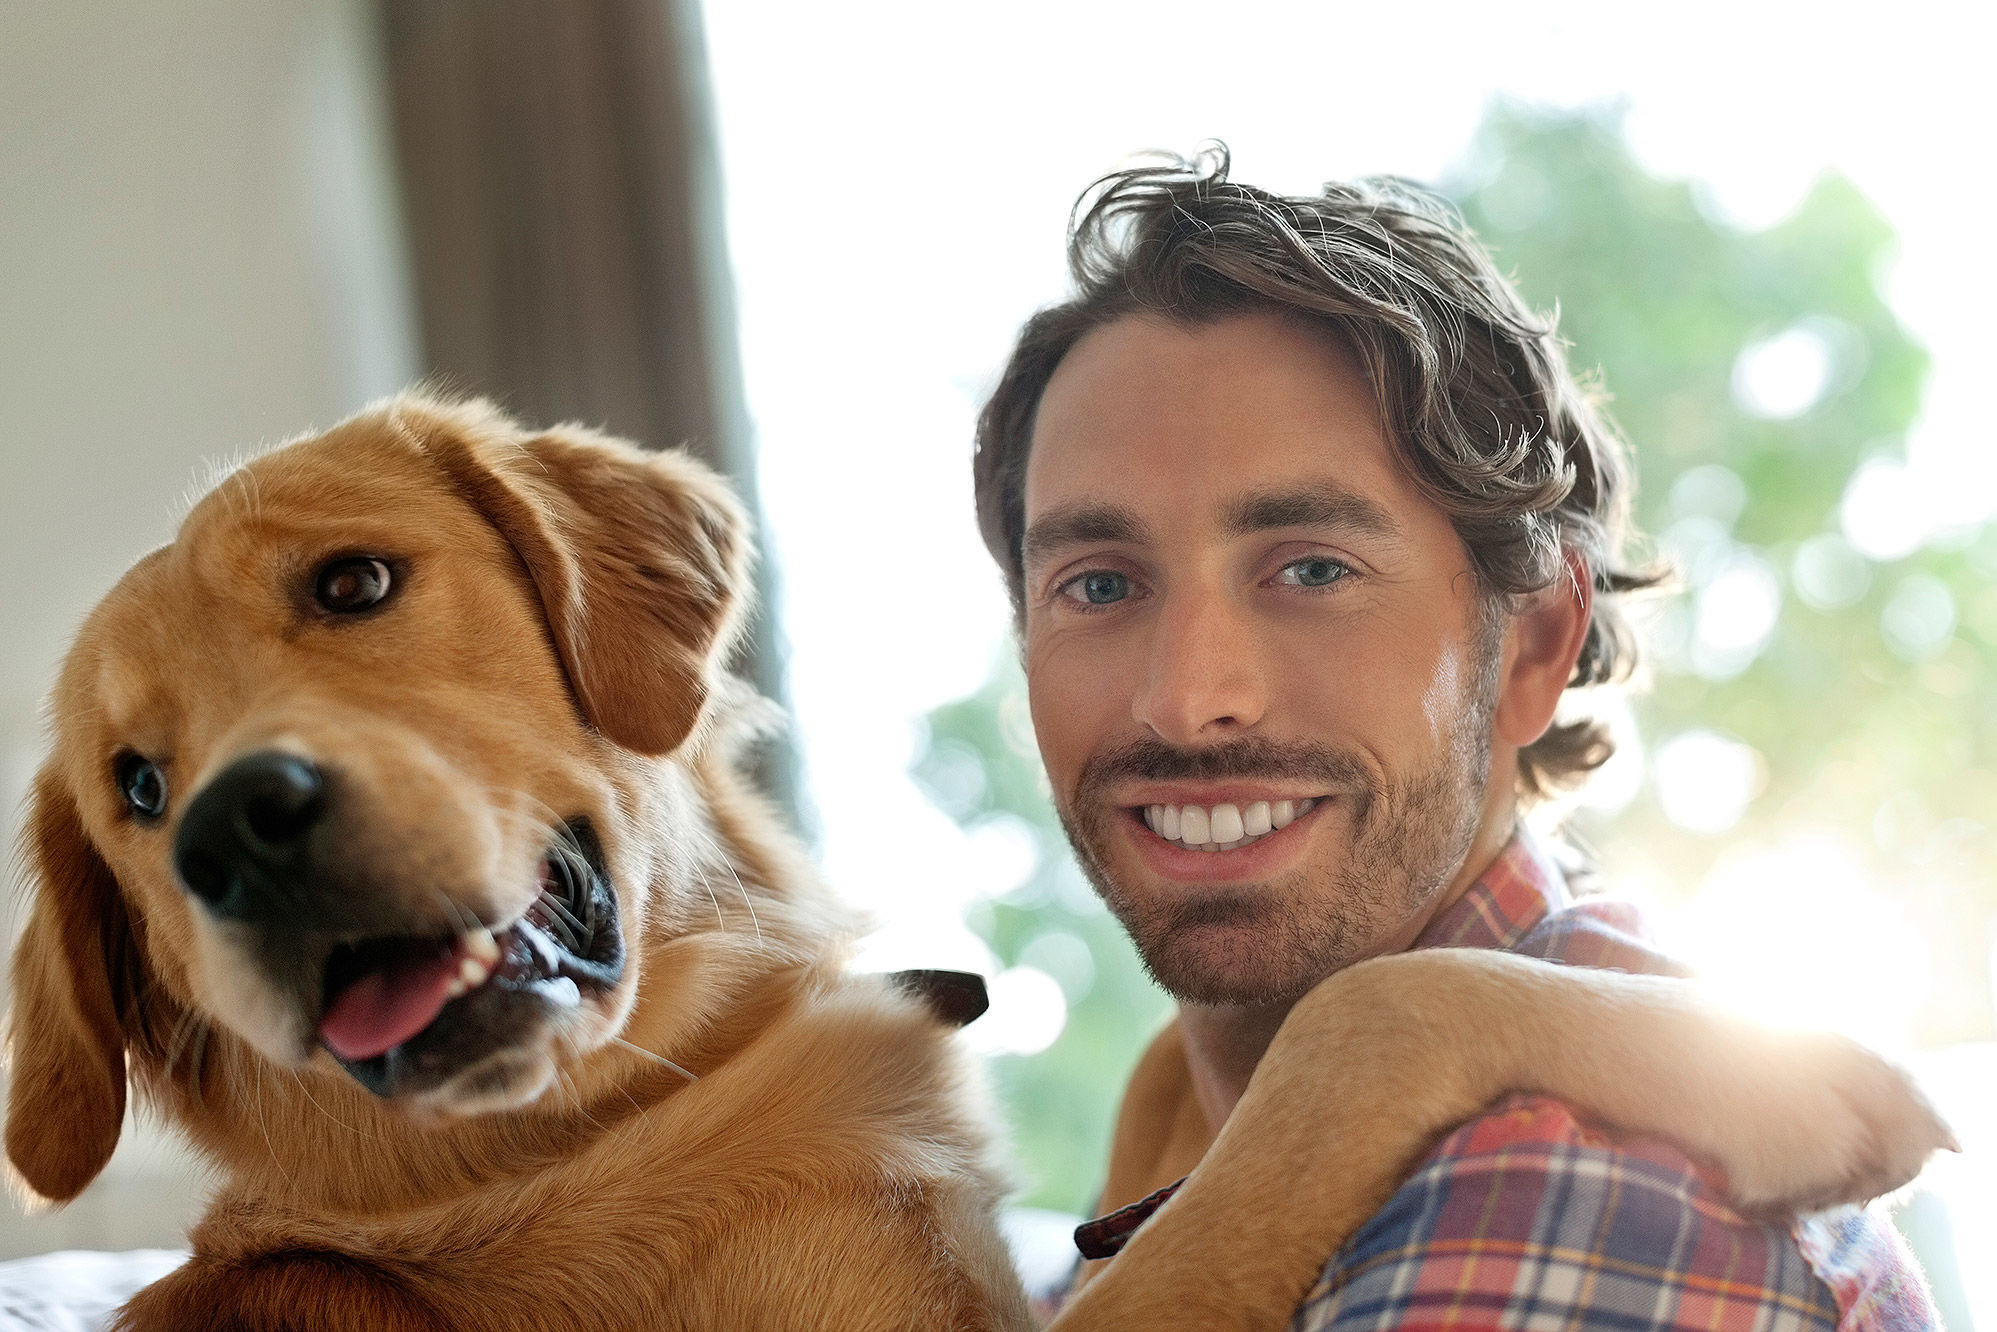 Study Finds What We All Know, Your Dog Makes You a Better Person